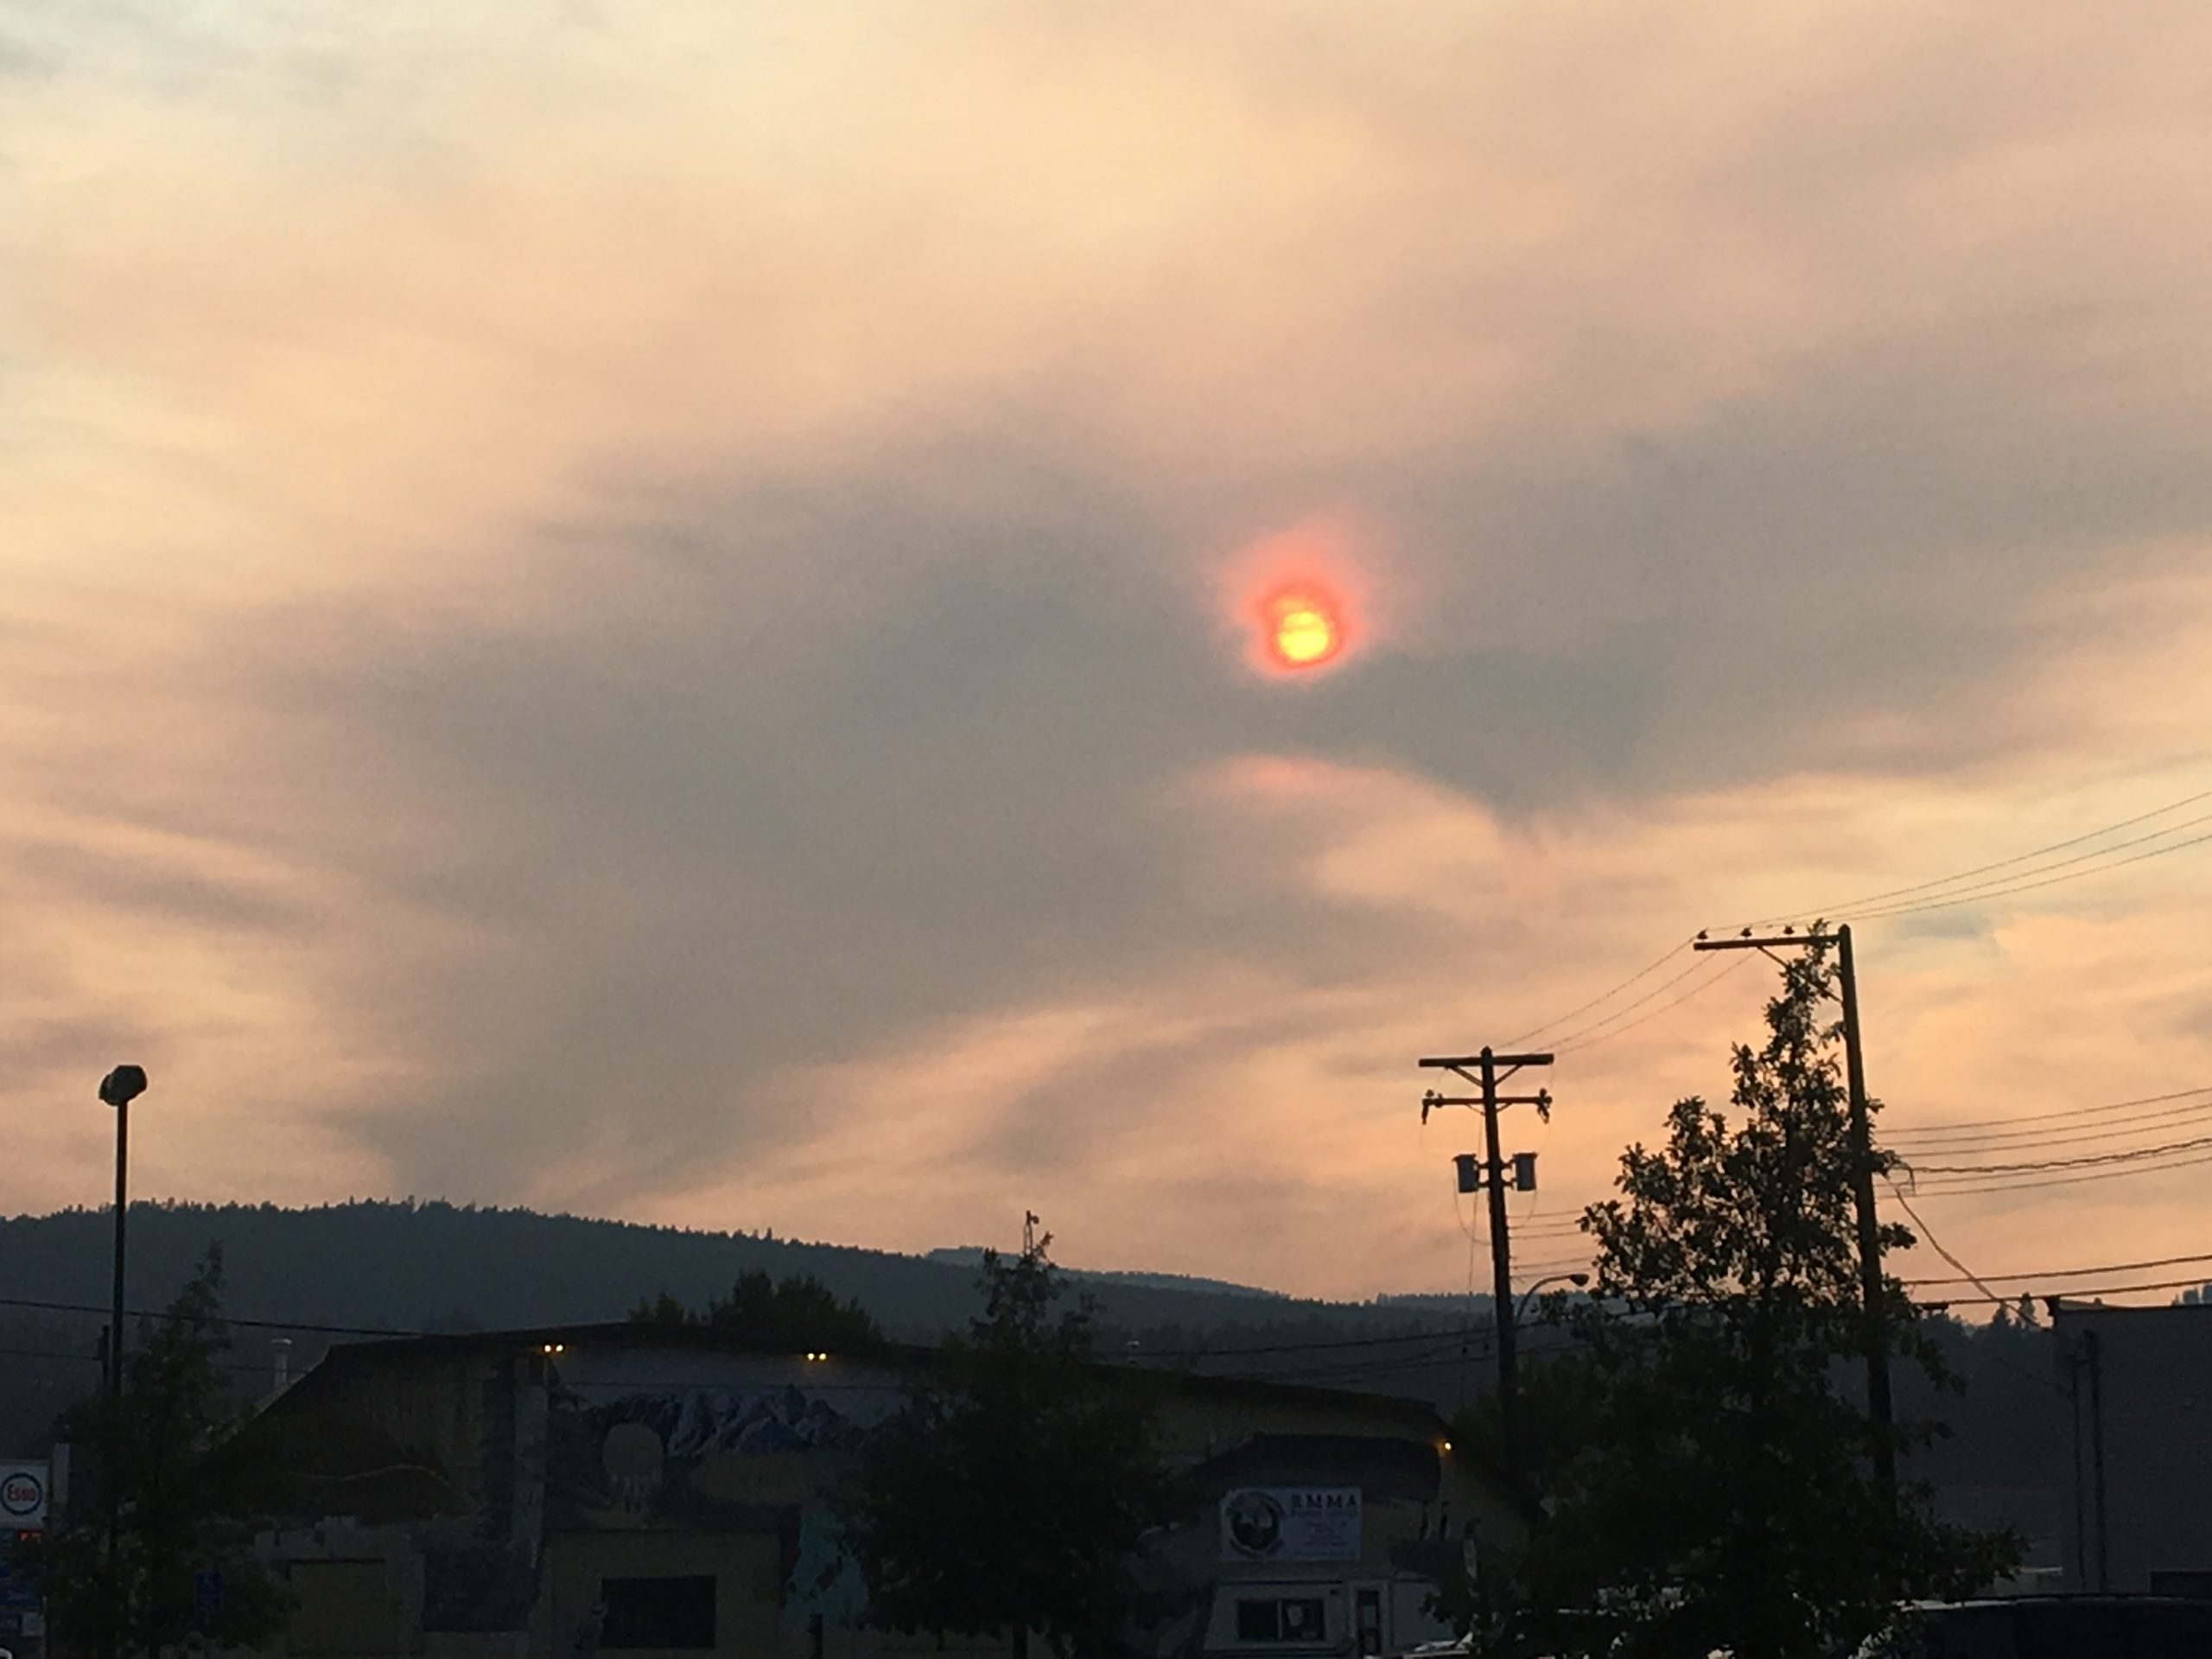 Environment Canada issues Air Quality Statement for East Kootenay